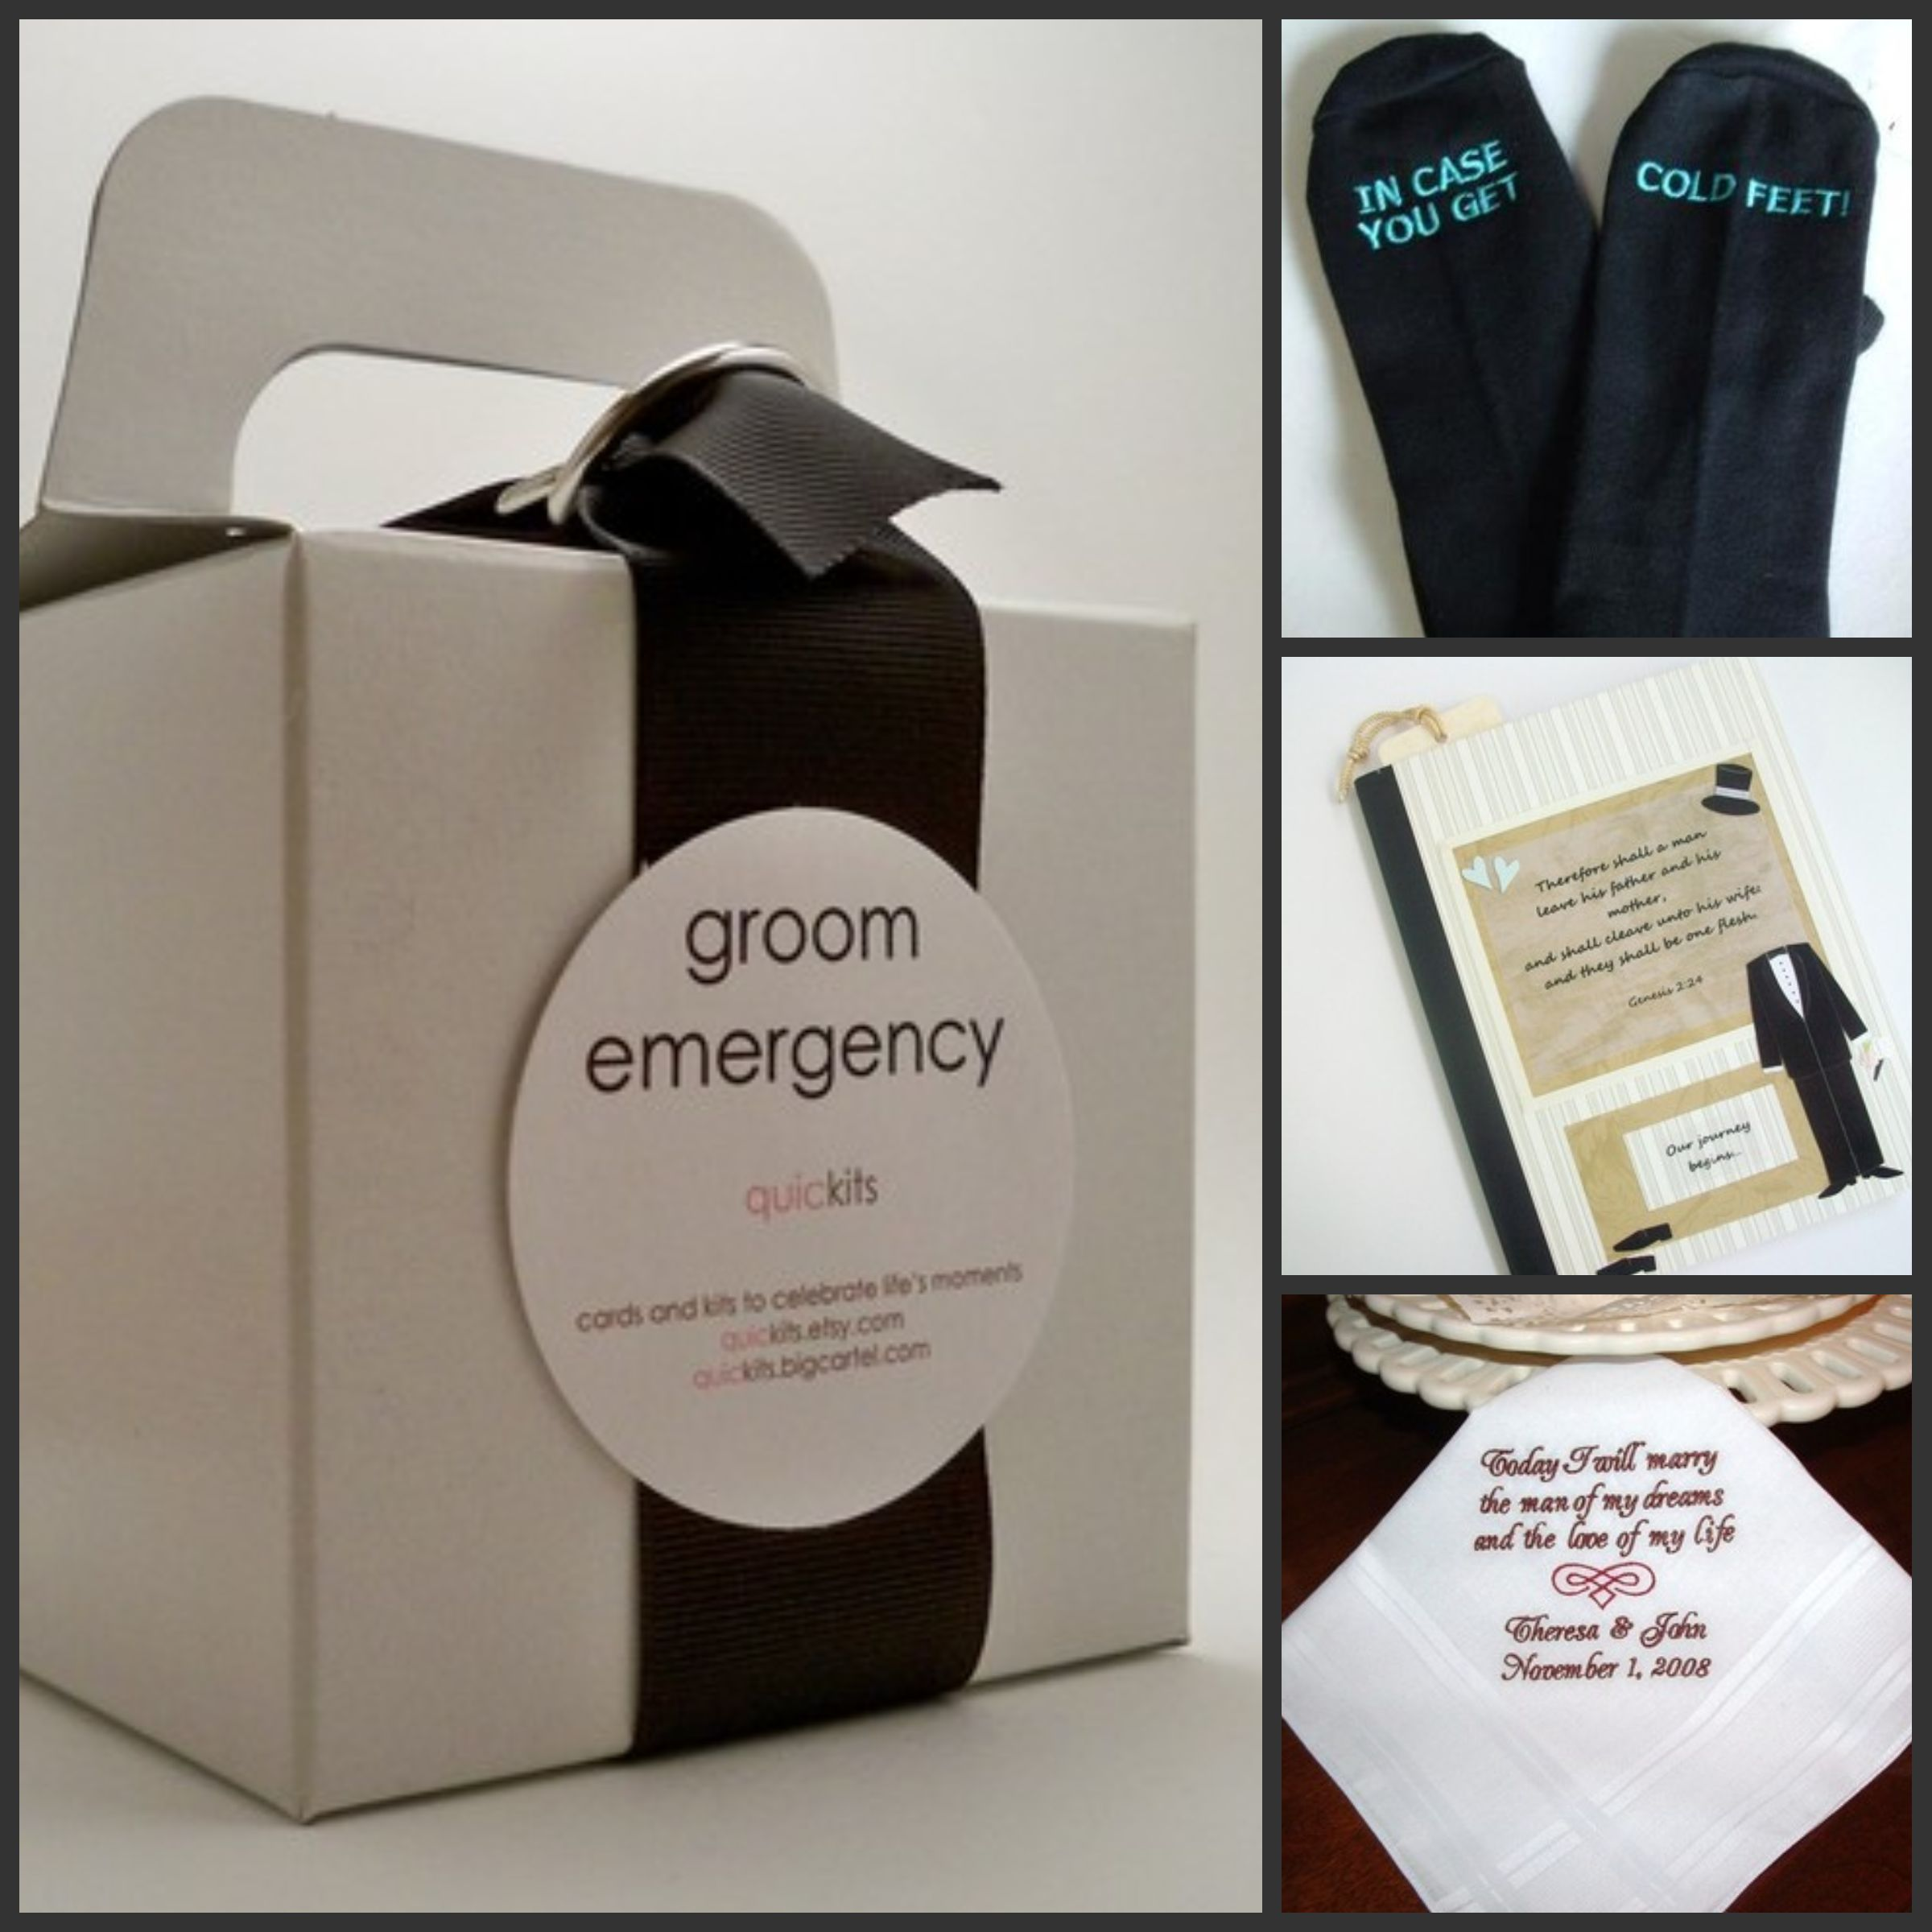 Wedding Gift Baskets For Bride And Groom Ideas : personal gifts for your groom clockwise from left groom emergency kit ...